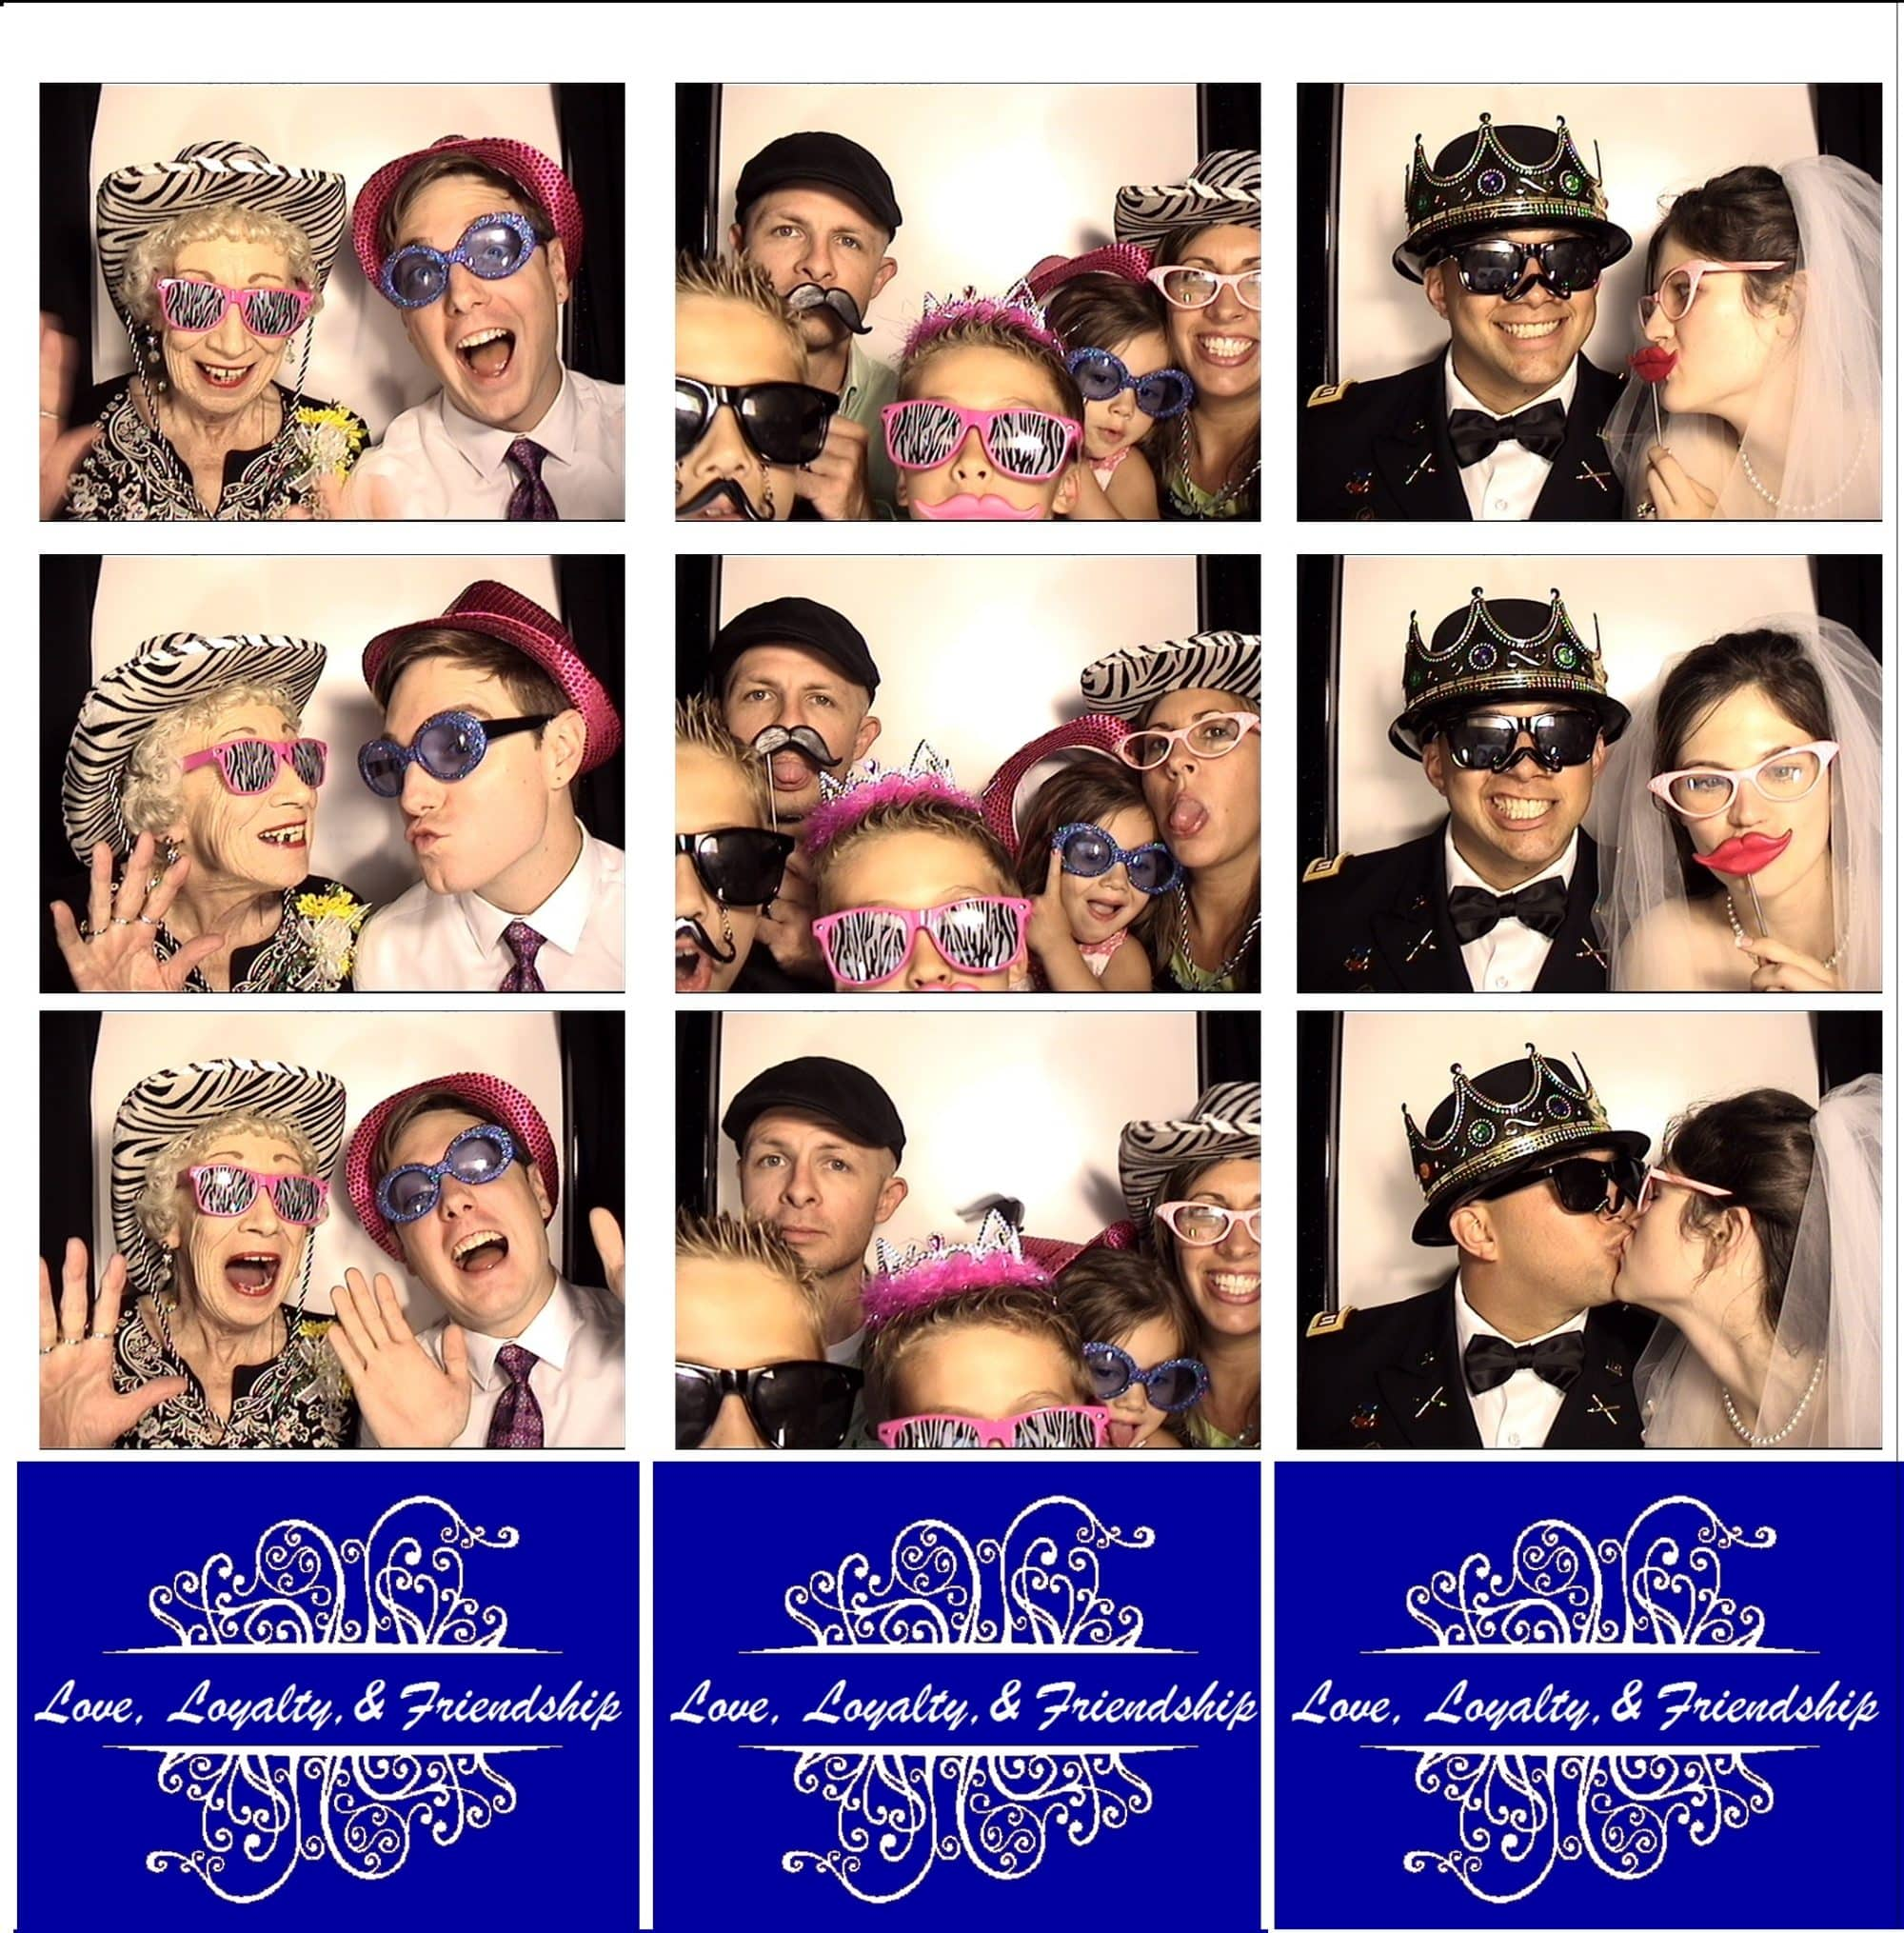 photo booth strips with 3 photos and a custom wedding logo at the bottom